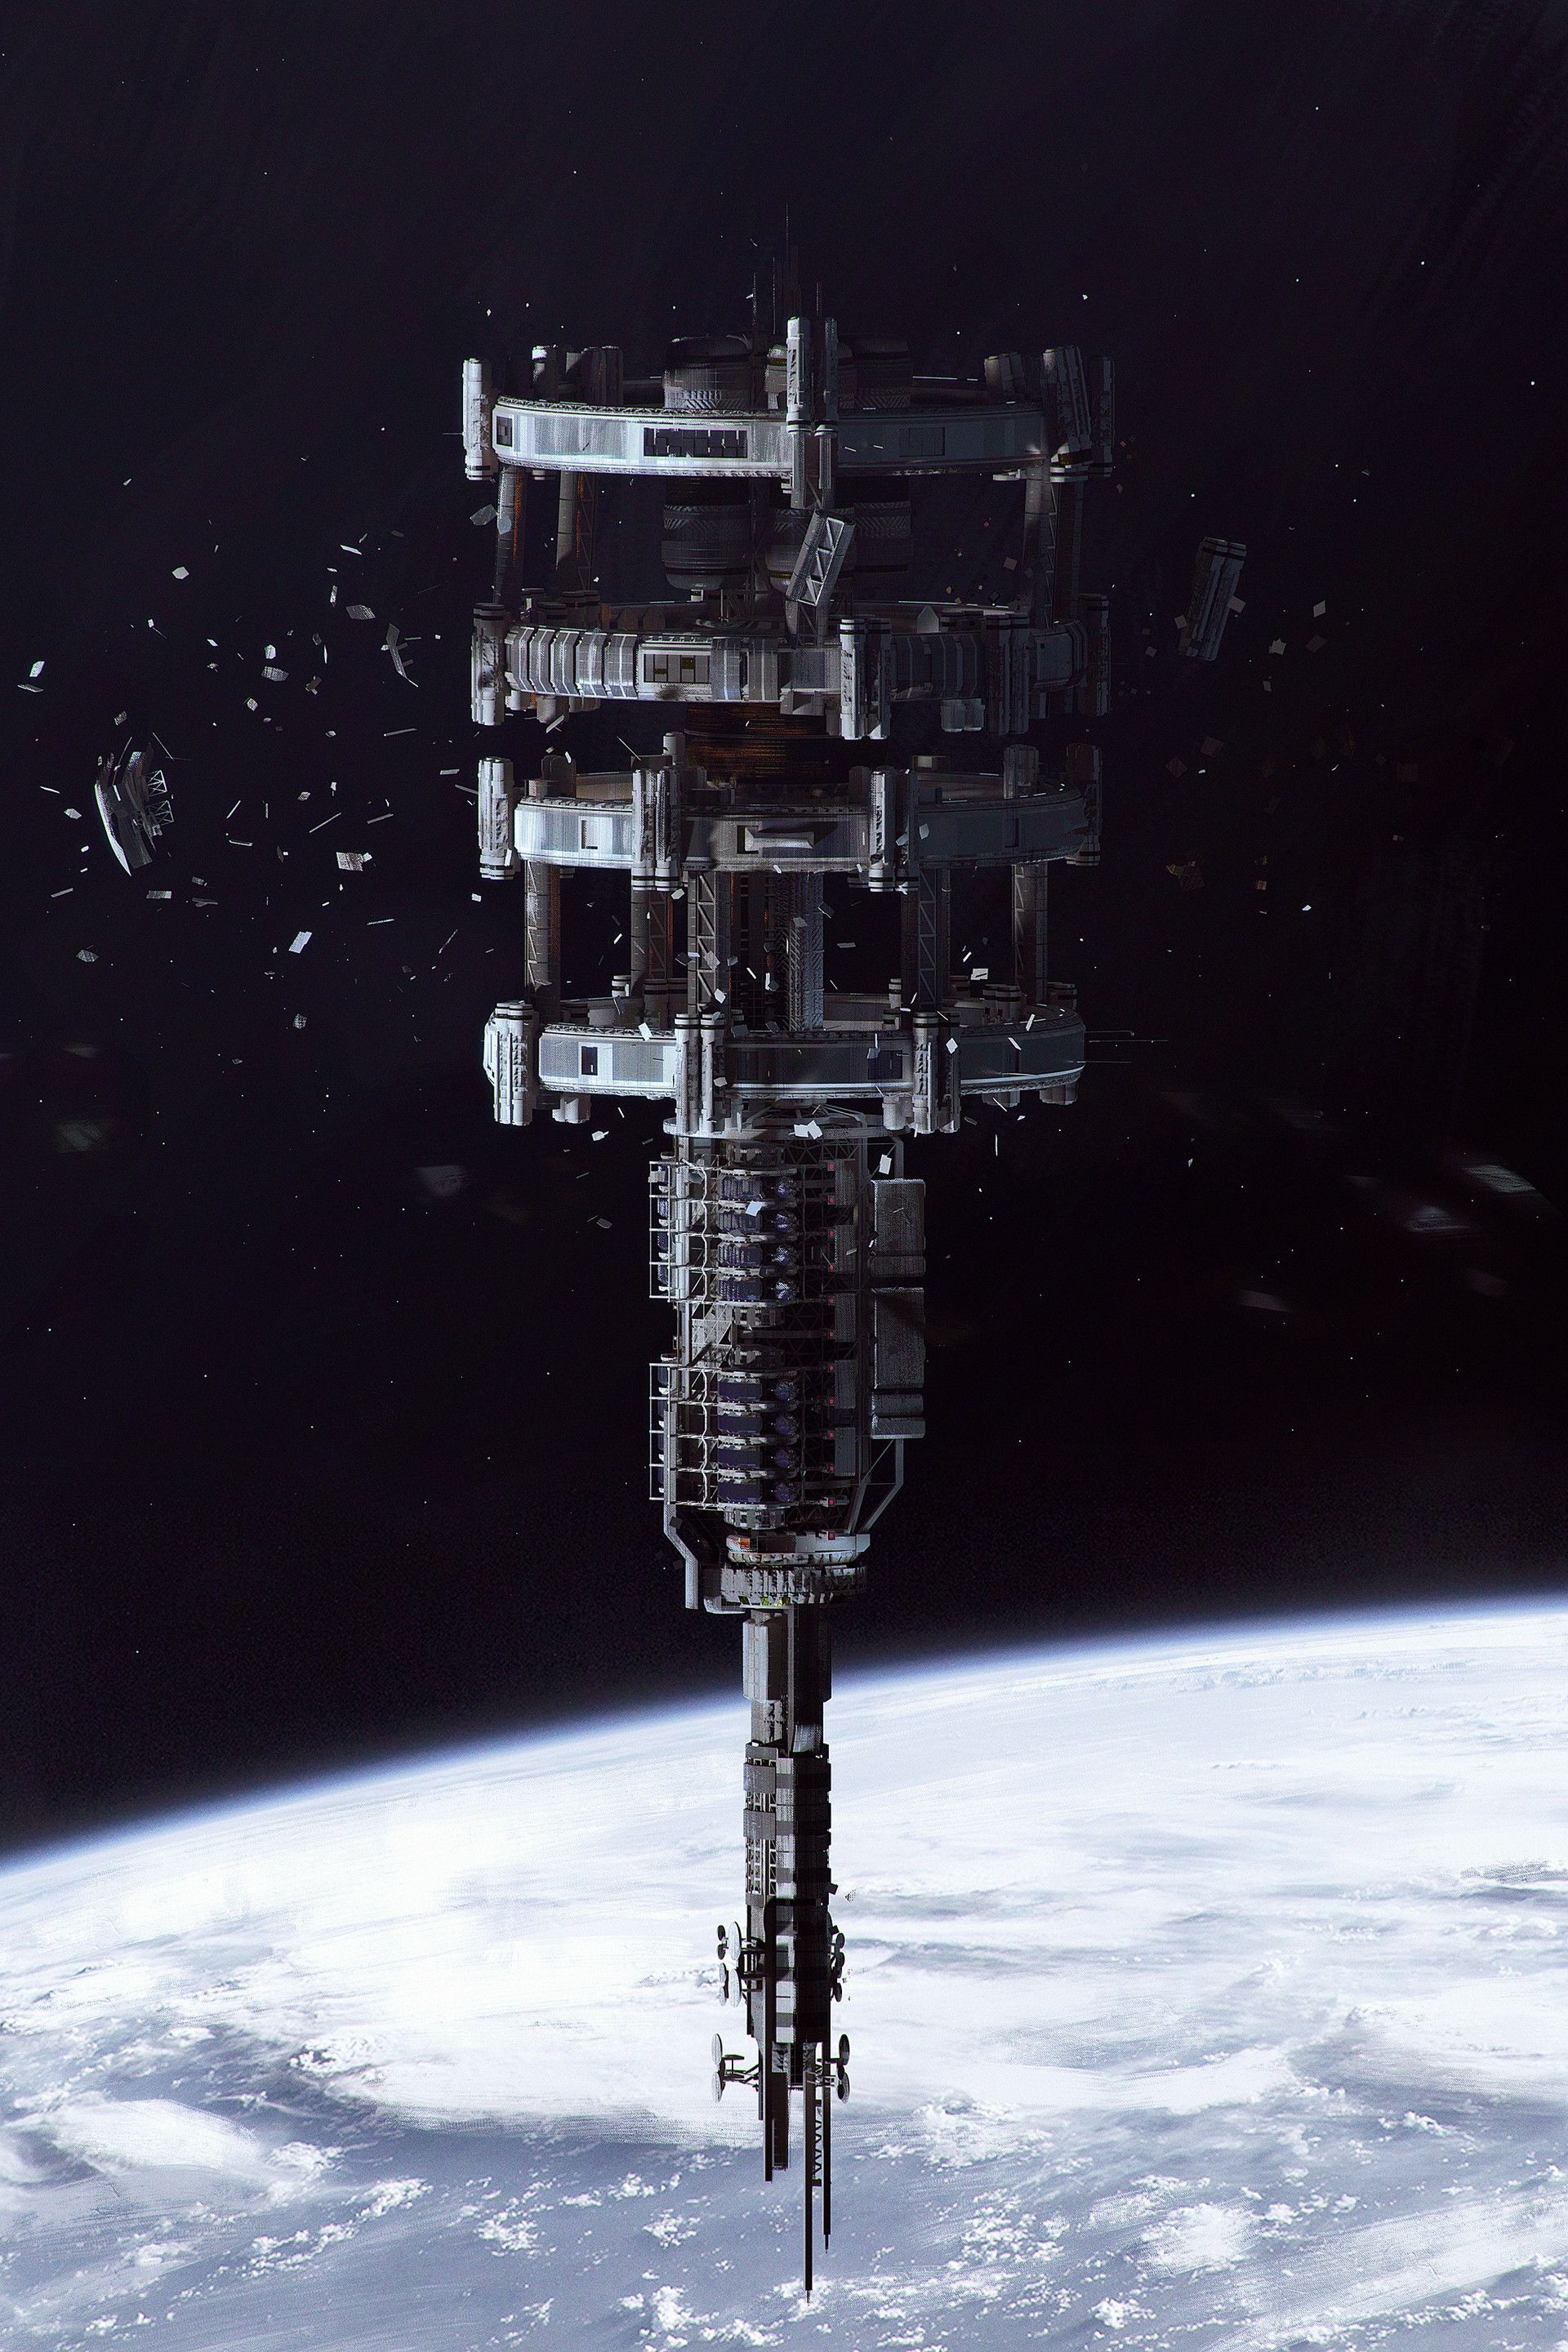 Pin By Stephen Millender On Sci Fi Reference Space Station Spaceship Art Starship Concept